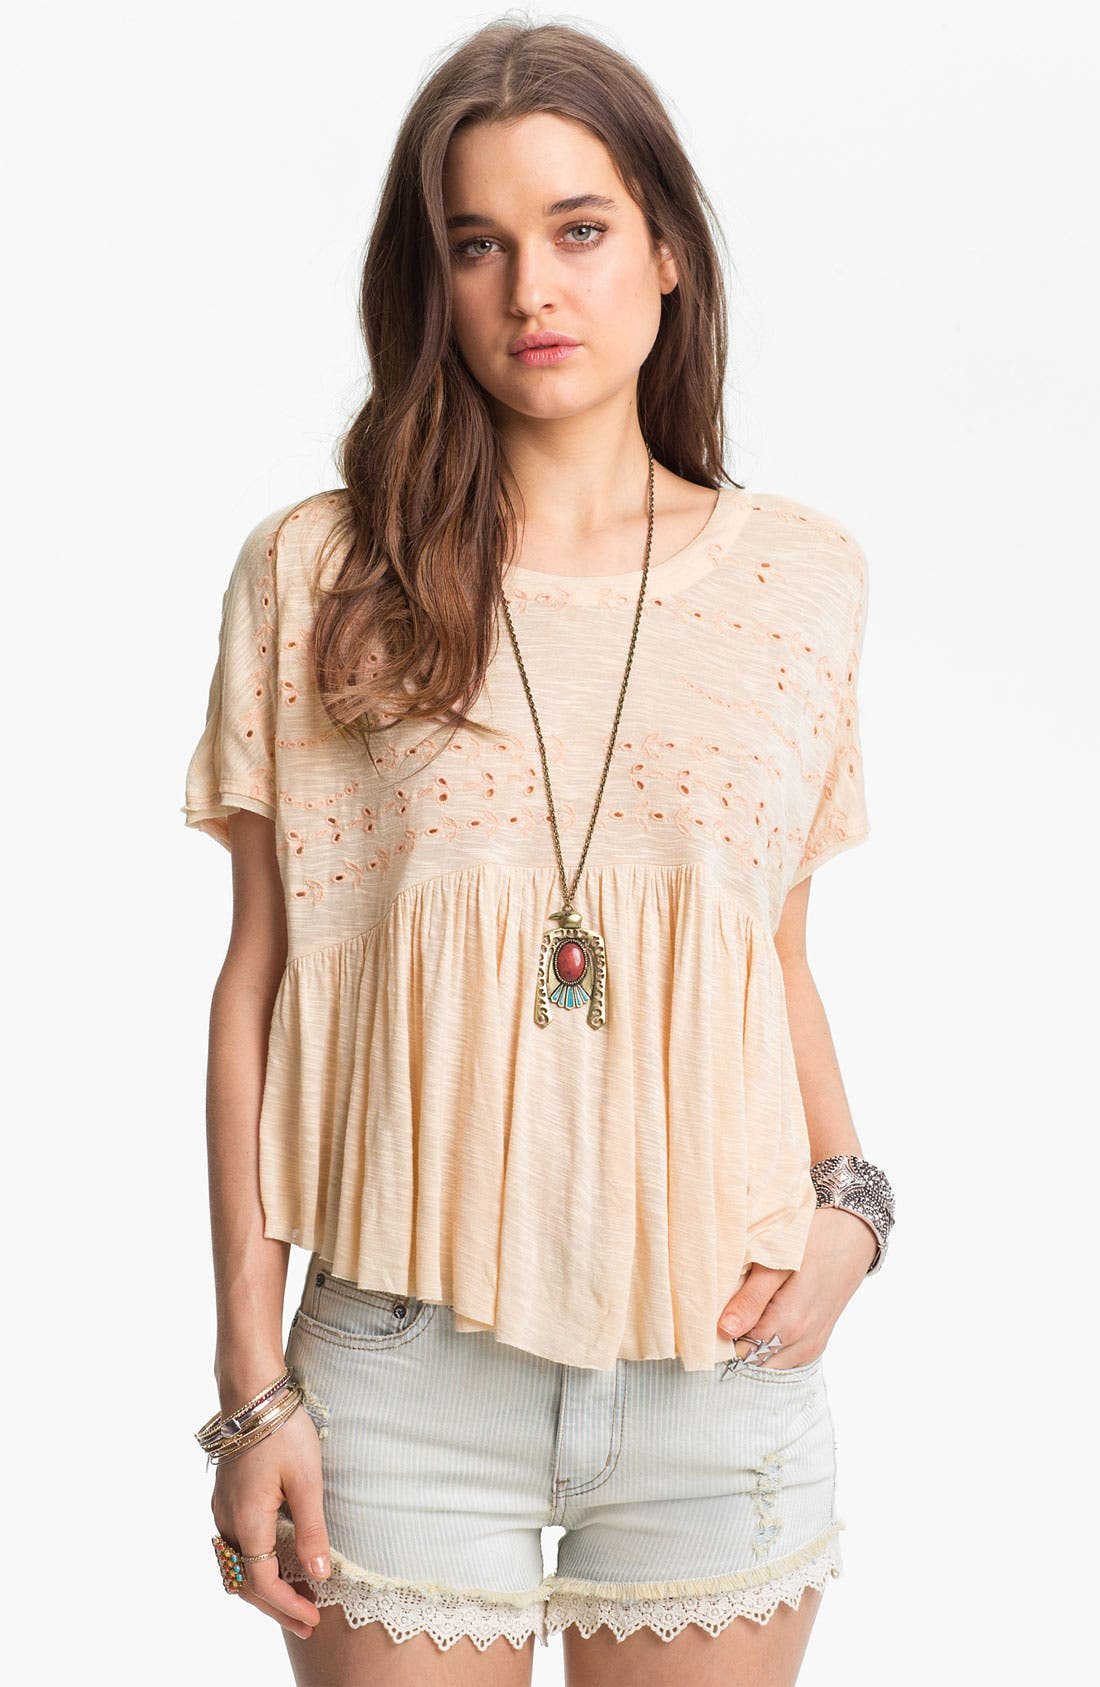 Alternate Image 1 Selected - Free People 'Sweetart' Eyelet Embroidered Top